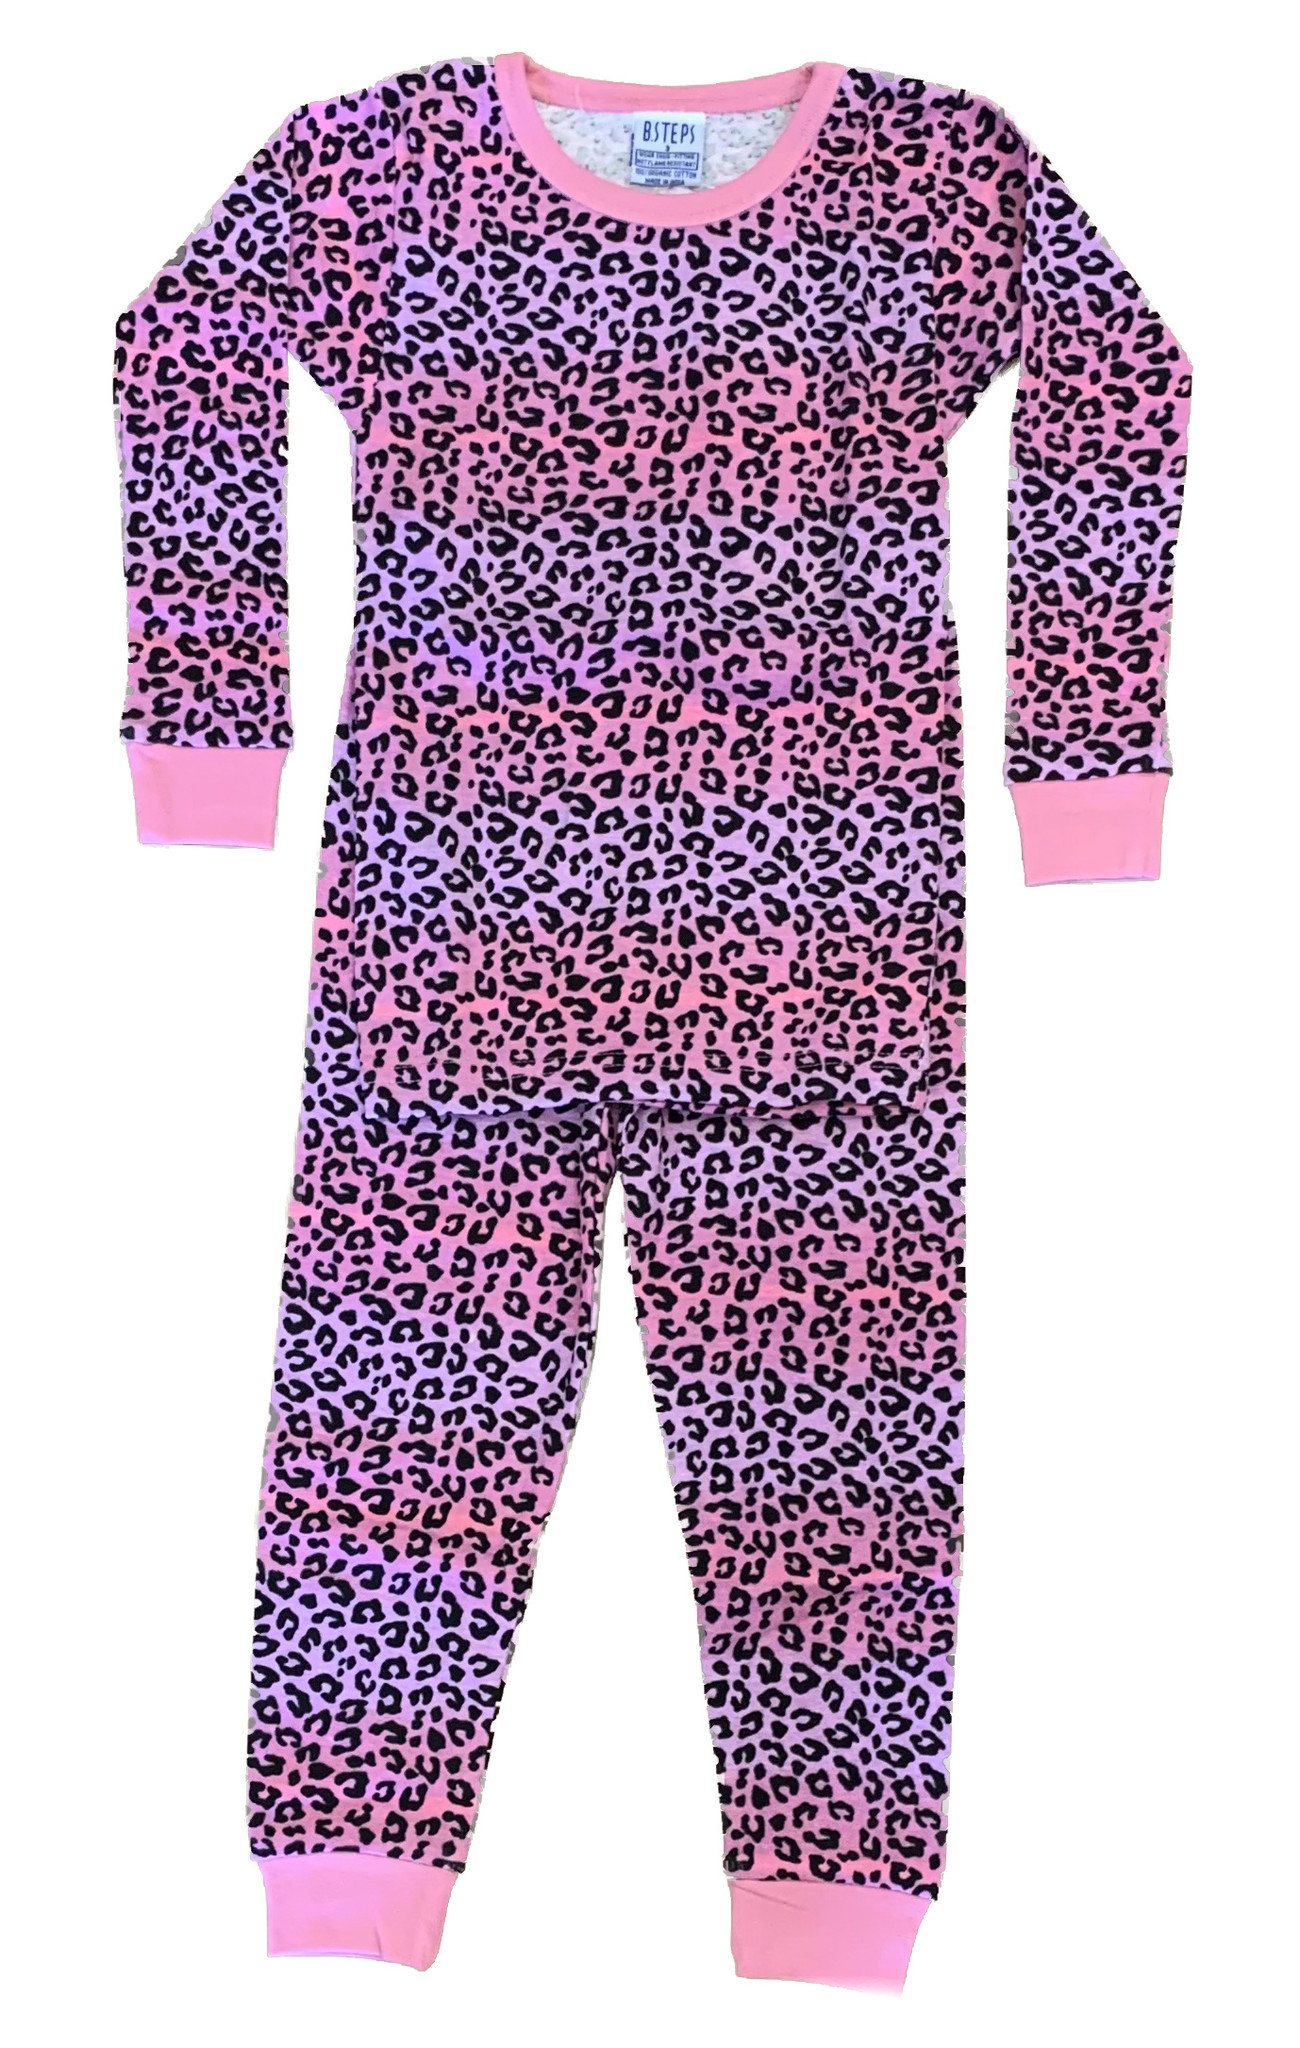 Baby Steps Pink/Lilac Ombre Cheetah Infant PJ Set